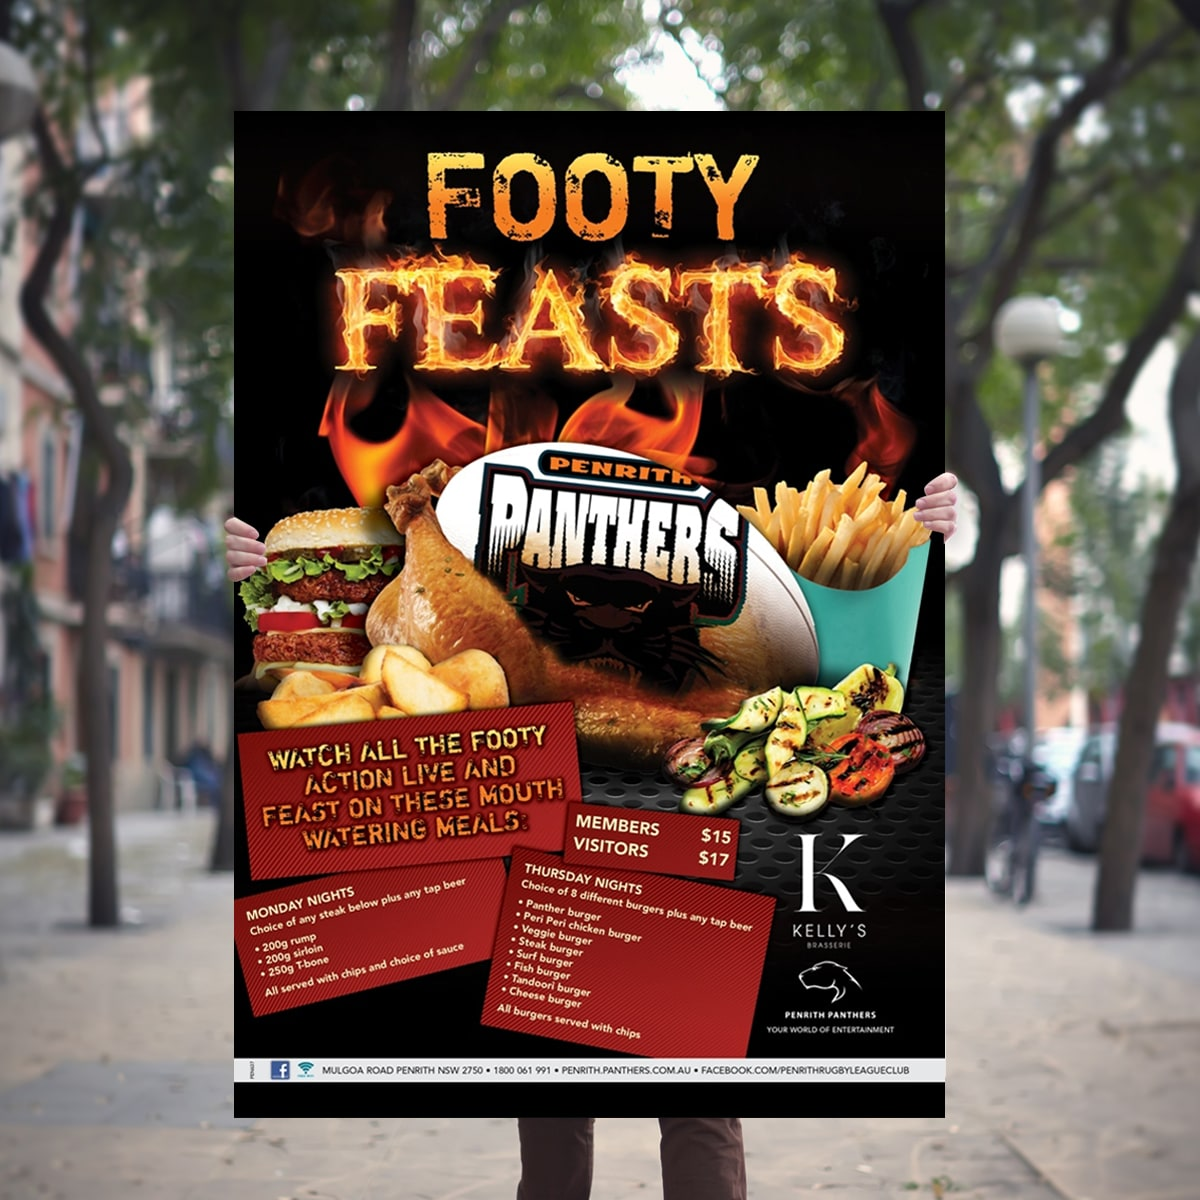 Footy feasts promtional point of sale POS Kit artwork graphic design for Penrith Panthers.